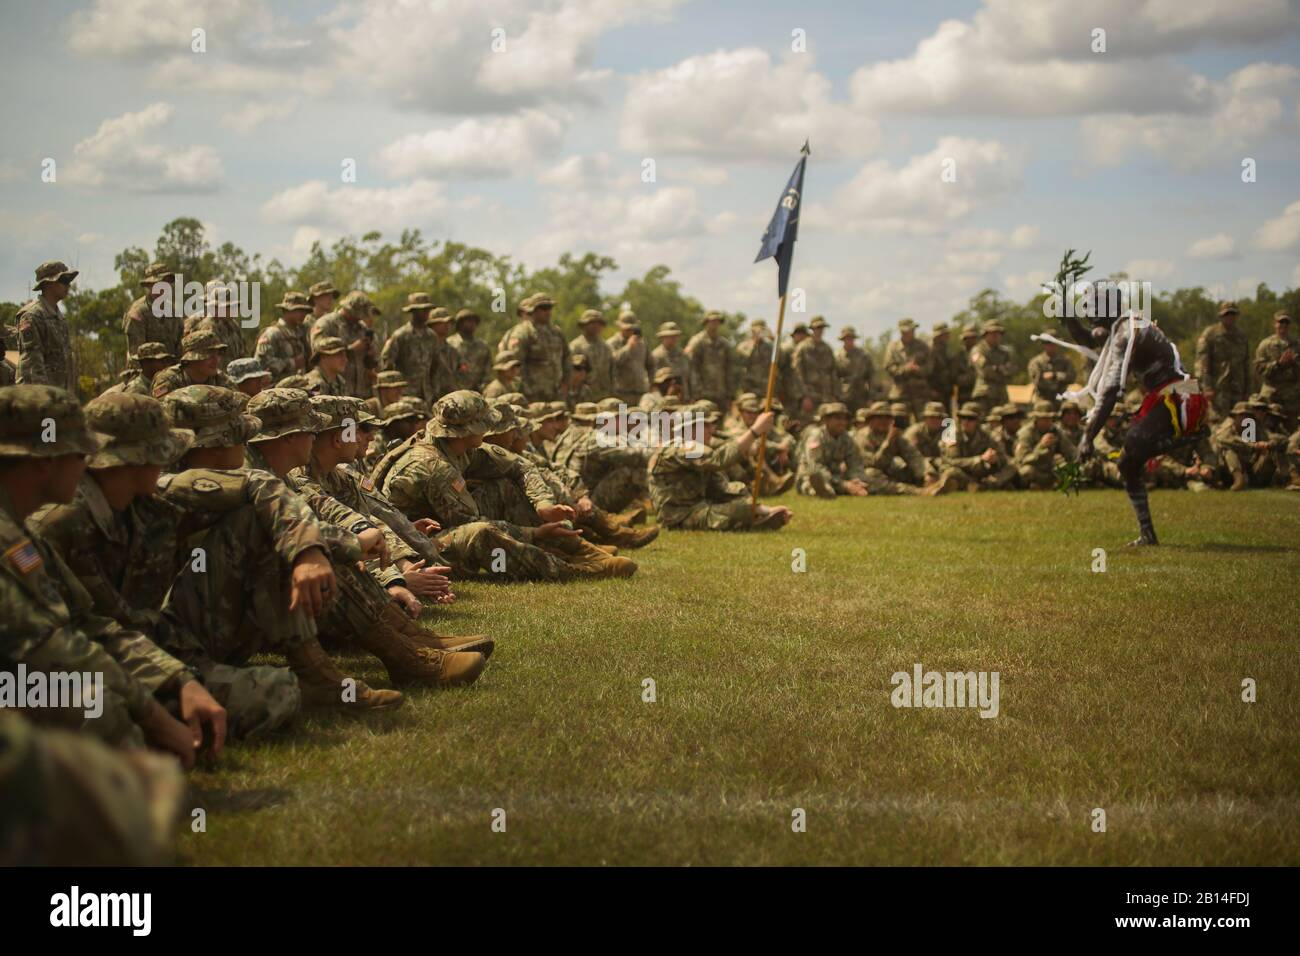 U.S. Soldiers assigned to U.S. Army Pacific enjoy a traditional dance performed by indigenous Australians during a welcome to country ceremony at Robertson Barracks, Darwin, Northern Territory, Australia, May 16, 2017. U.S. Soldiers, along with Marines assigned to Marine Rotational Force Darwin, the Japanese Ground Self-Defense Force, and the Australian Defence Force, will participate in exercise Southern Jackaroo. The training is designed to improve units' readiness, as well as improve interoperability and partnerships. (U.S. Marine Corps photo by Sgt. Emmanuel Ramos) Stock Photo